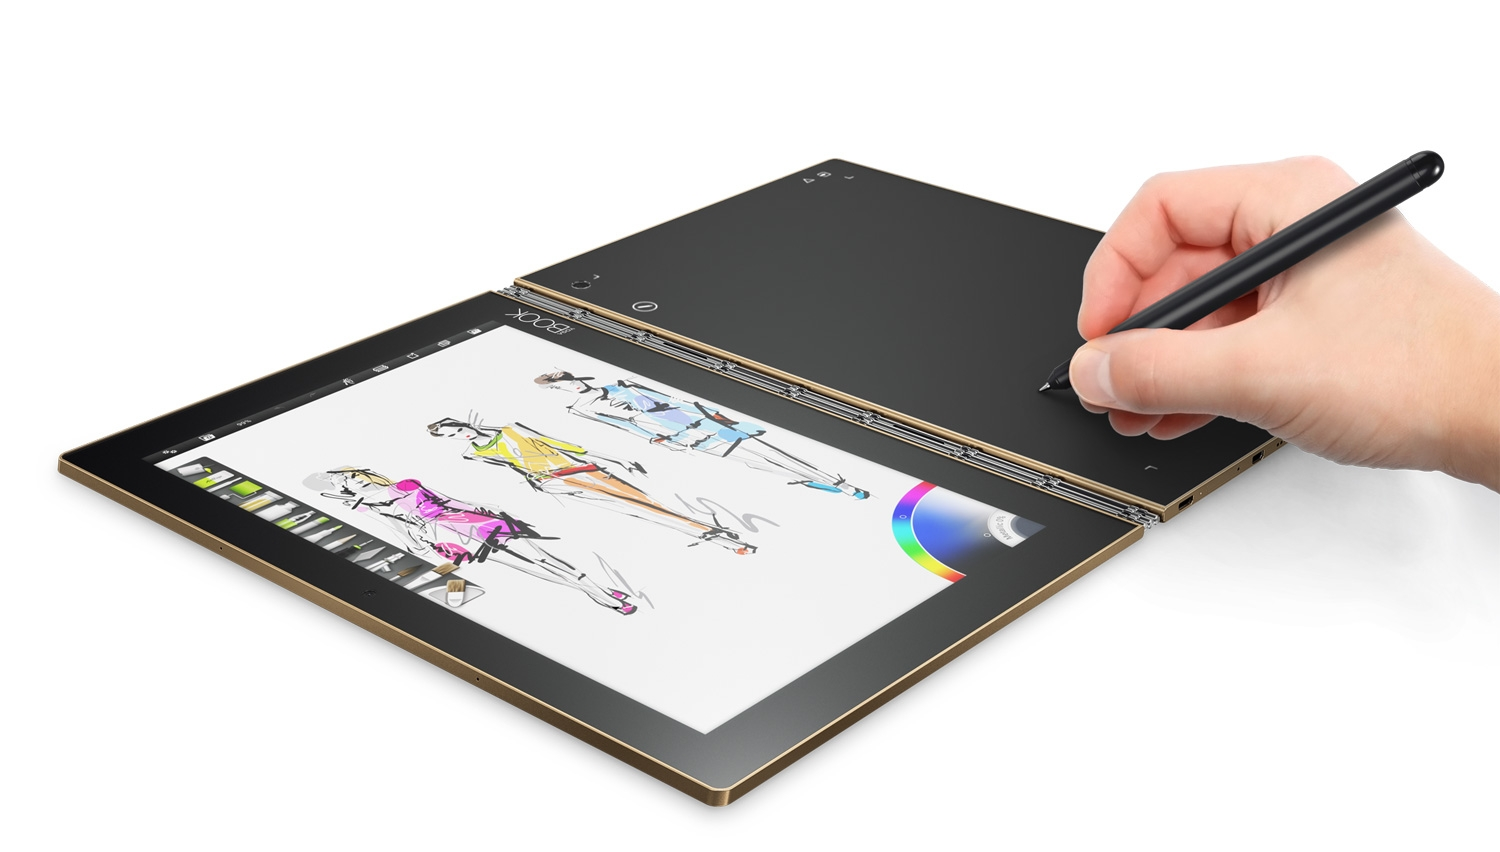 lenovo 39 s beautiful tablet laptop hybrid also captures what you draw on paper digital arts. Black Bedroom Furniture Sets. Home Design Ideas